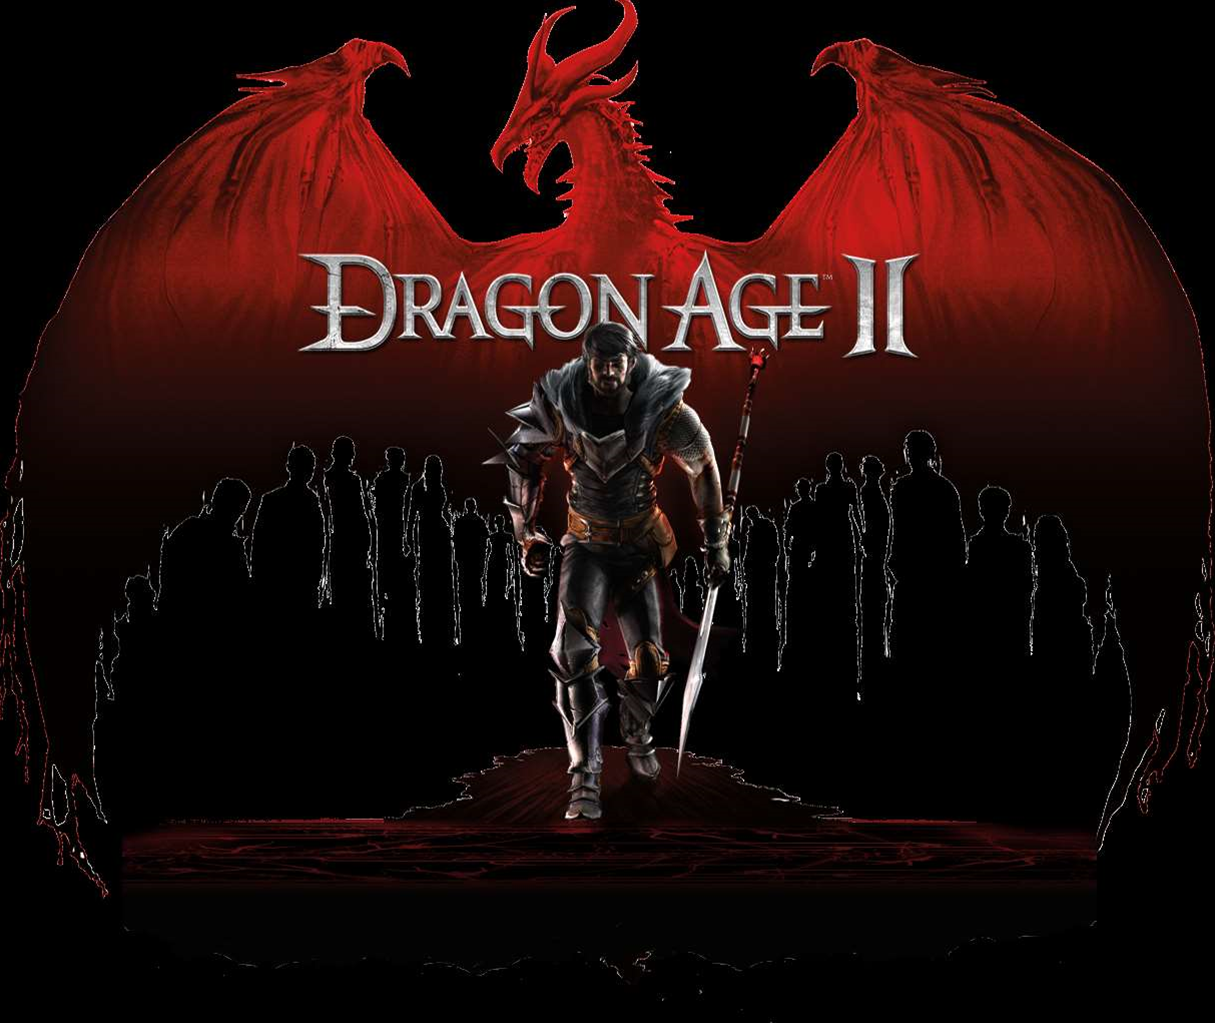 New Dragon Age II DLC ahoy - Legacy!